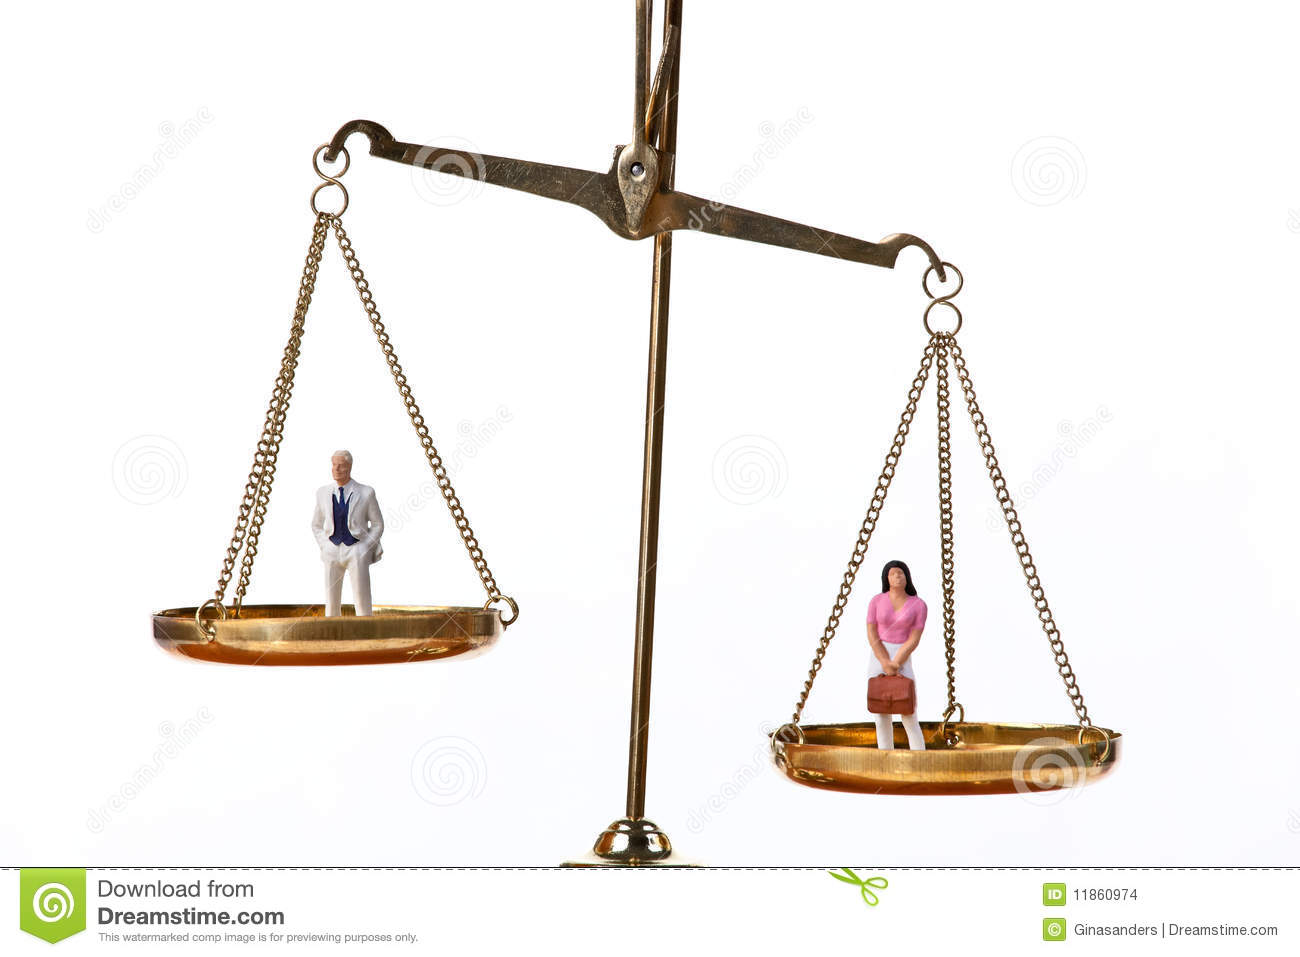 Dolls On Balancing Scales Stock Images - Image: 11860974